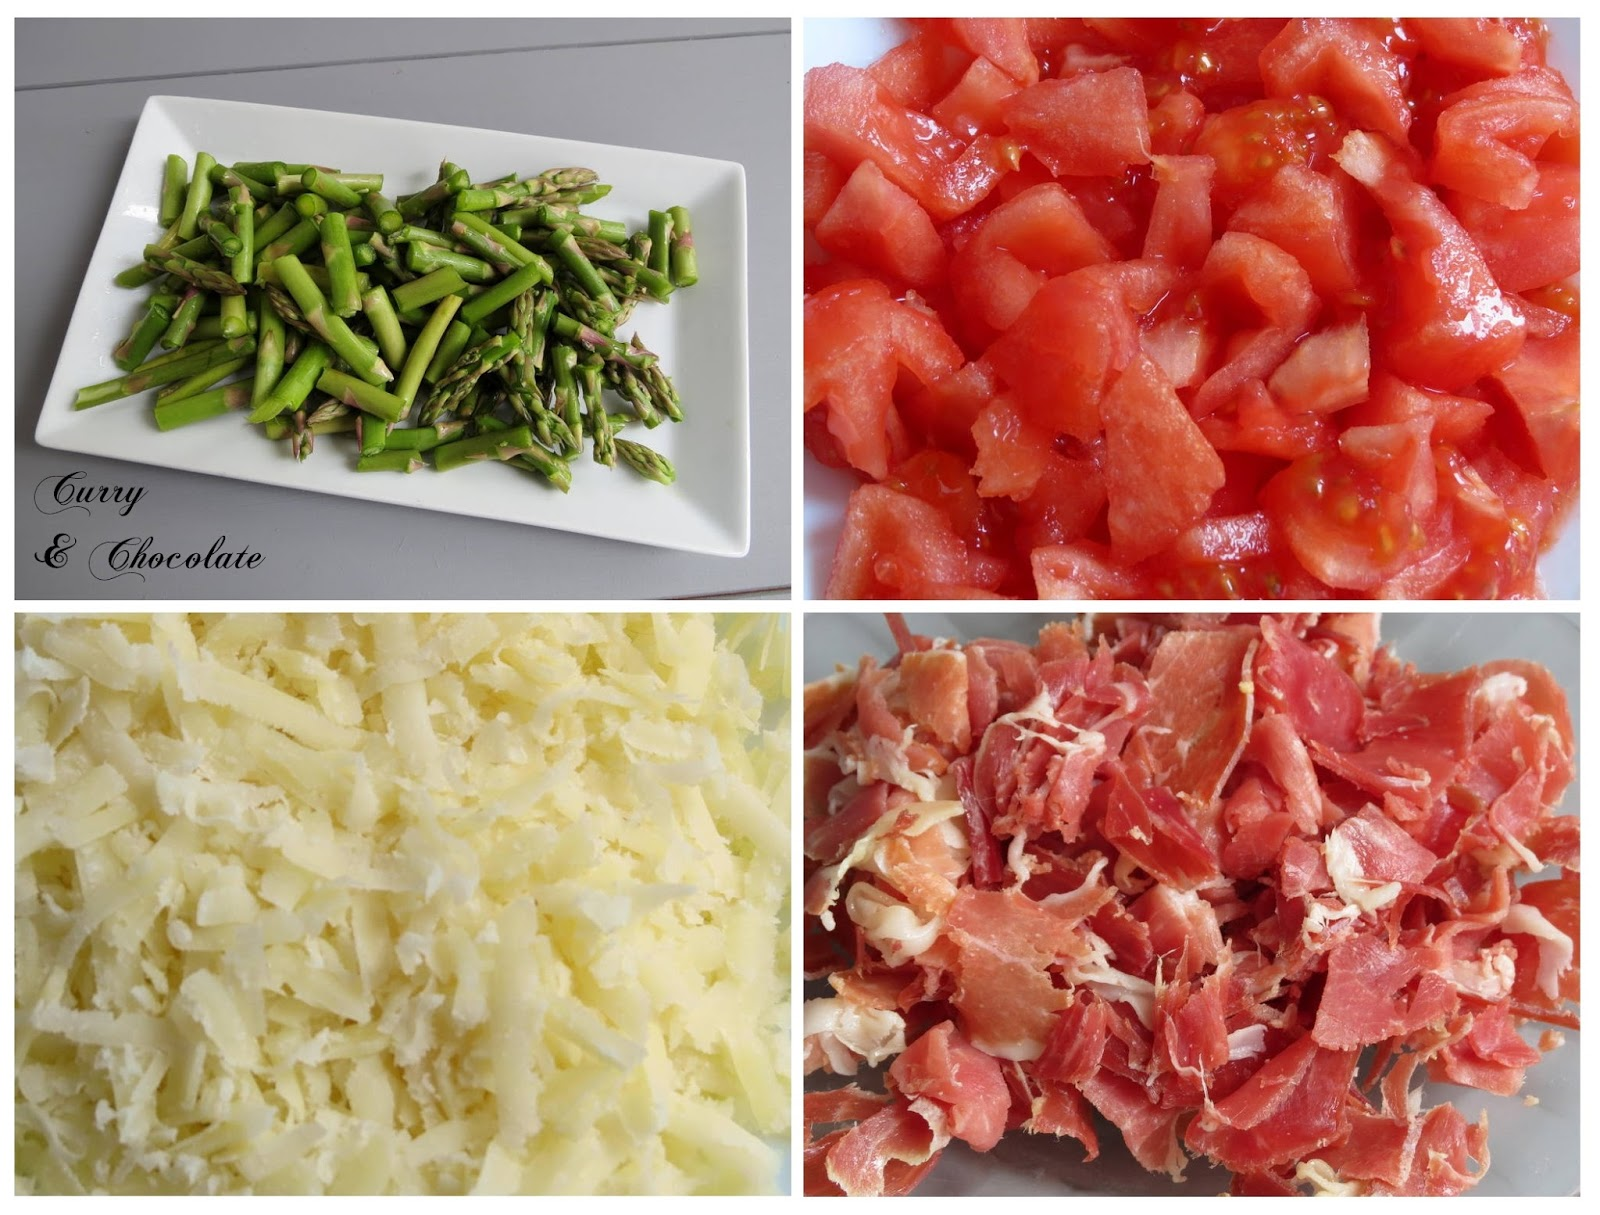 Ingredientes preparados